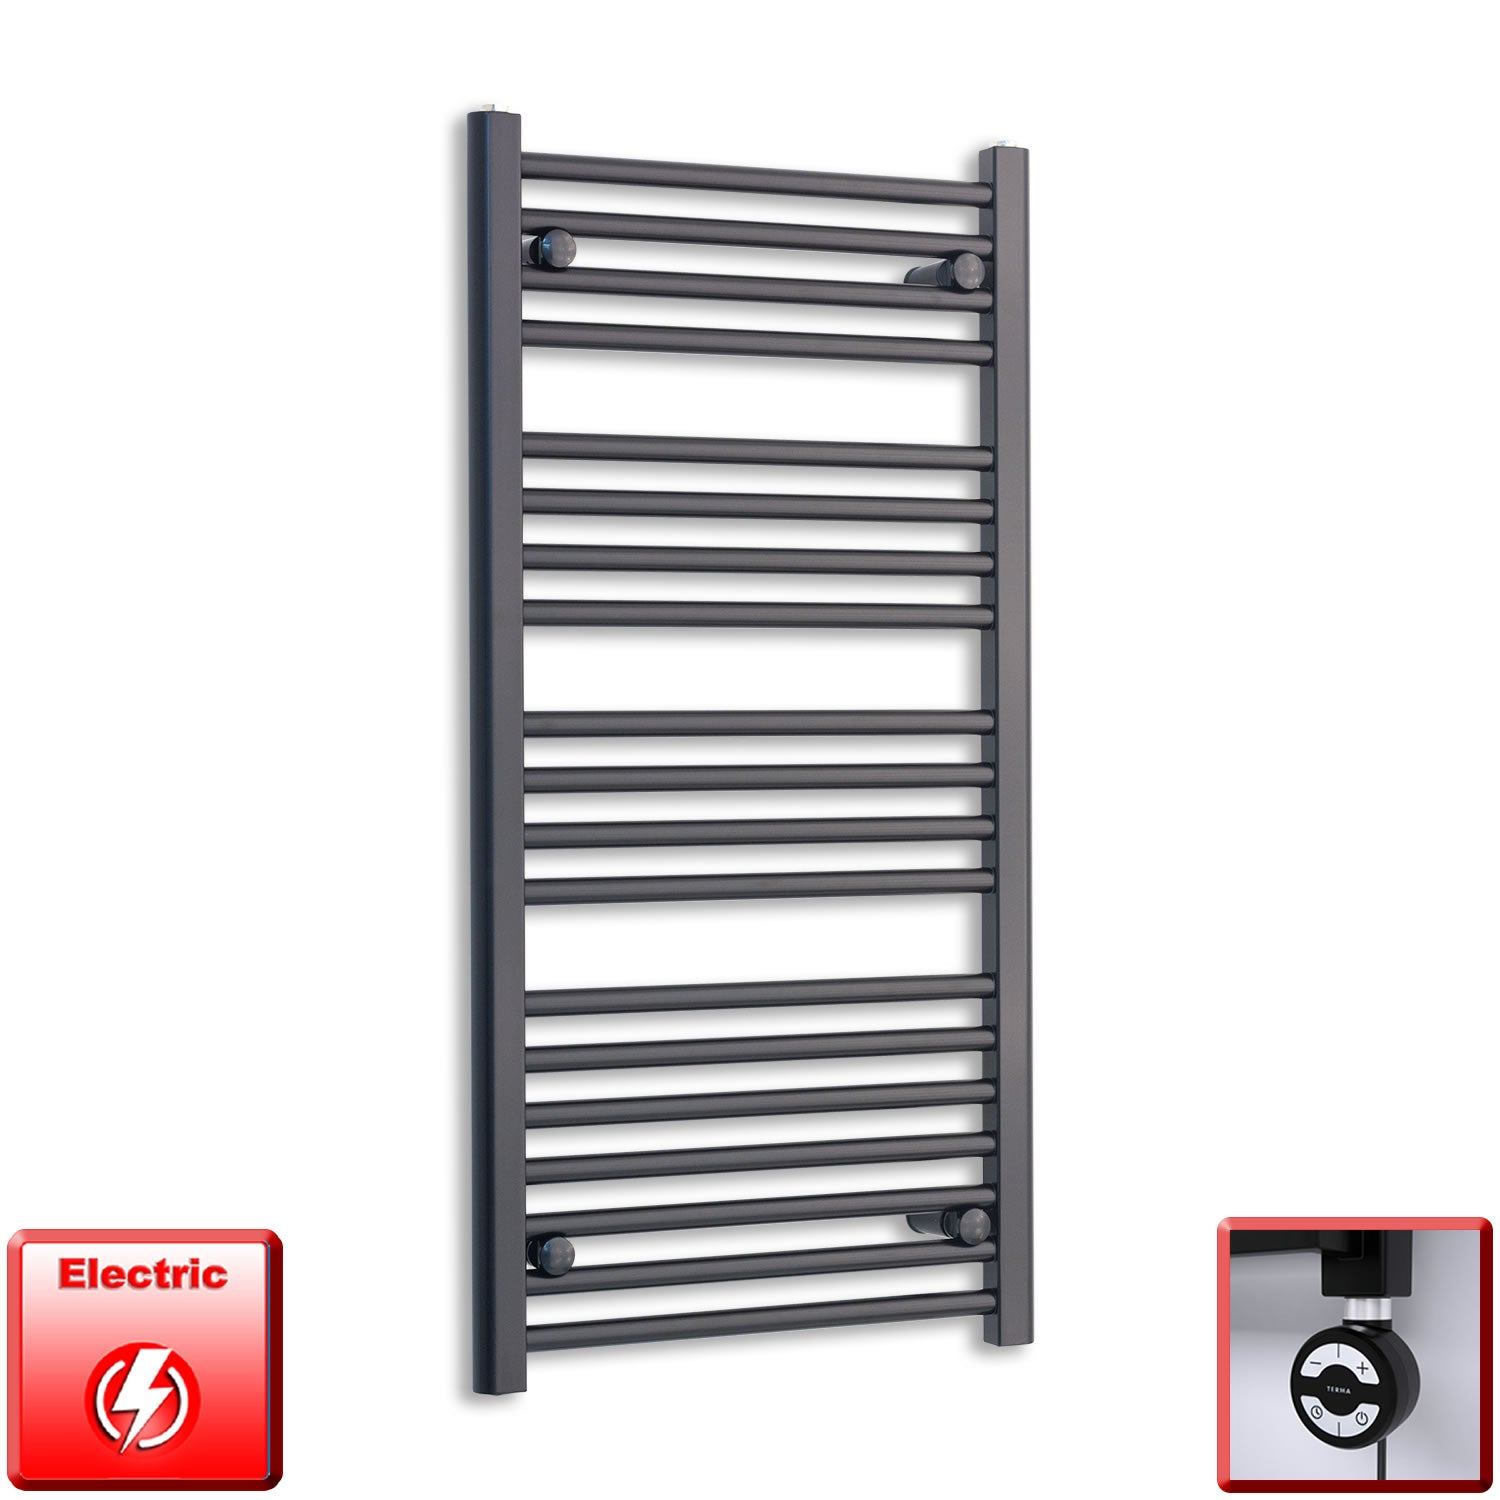 450mm Wide 1000mm High Pre-Filled Black Electric Towel Rail Radiator With Thermostatic MOA Element